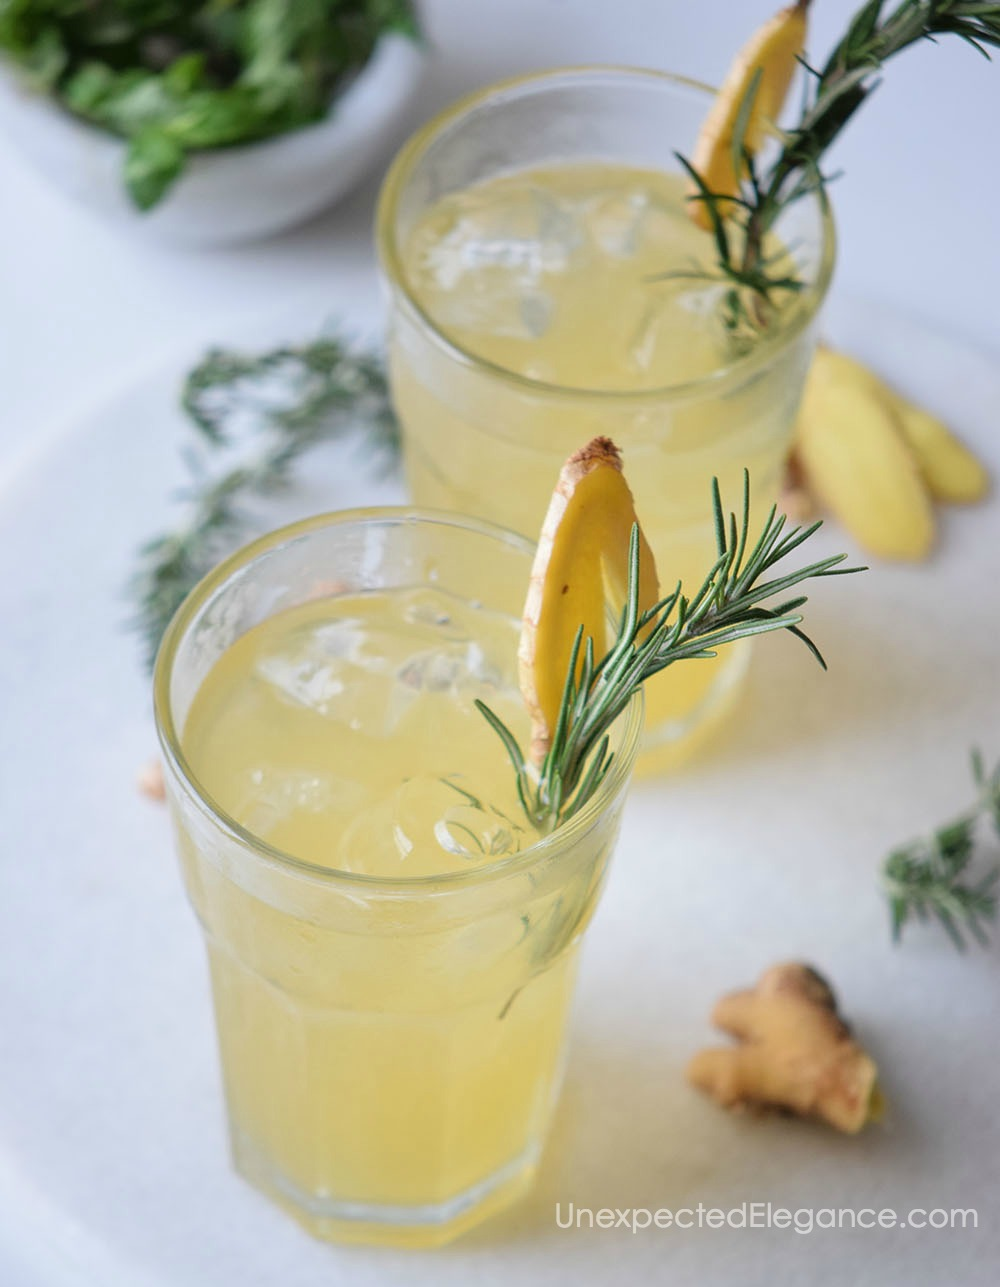 Try this awesome Ginger Beertail recipe! It's a perfect summer drink to share with friends on a warm night or as an after dinner cocktail.